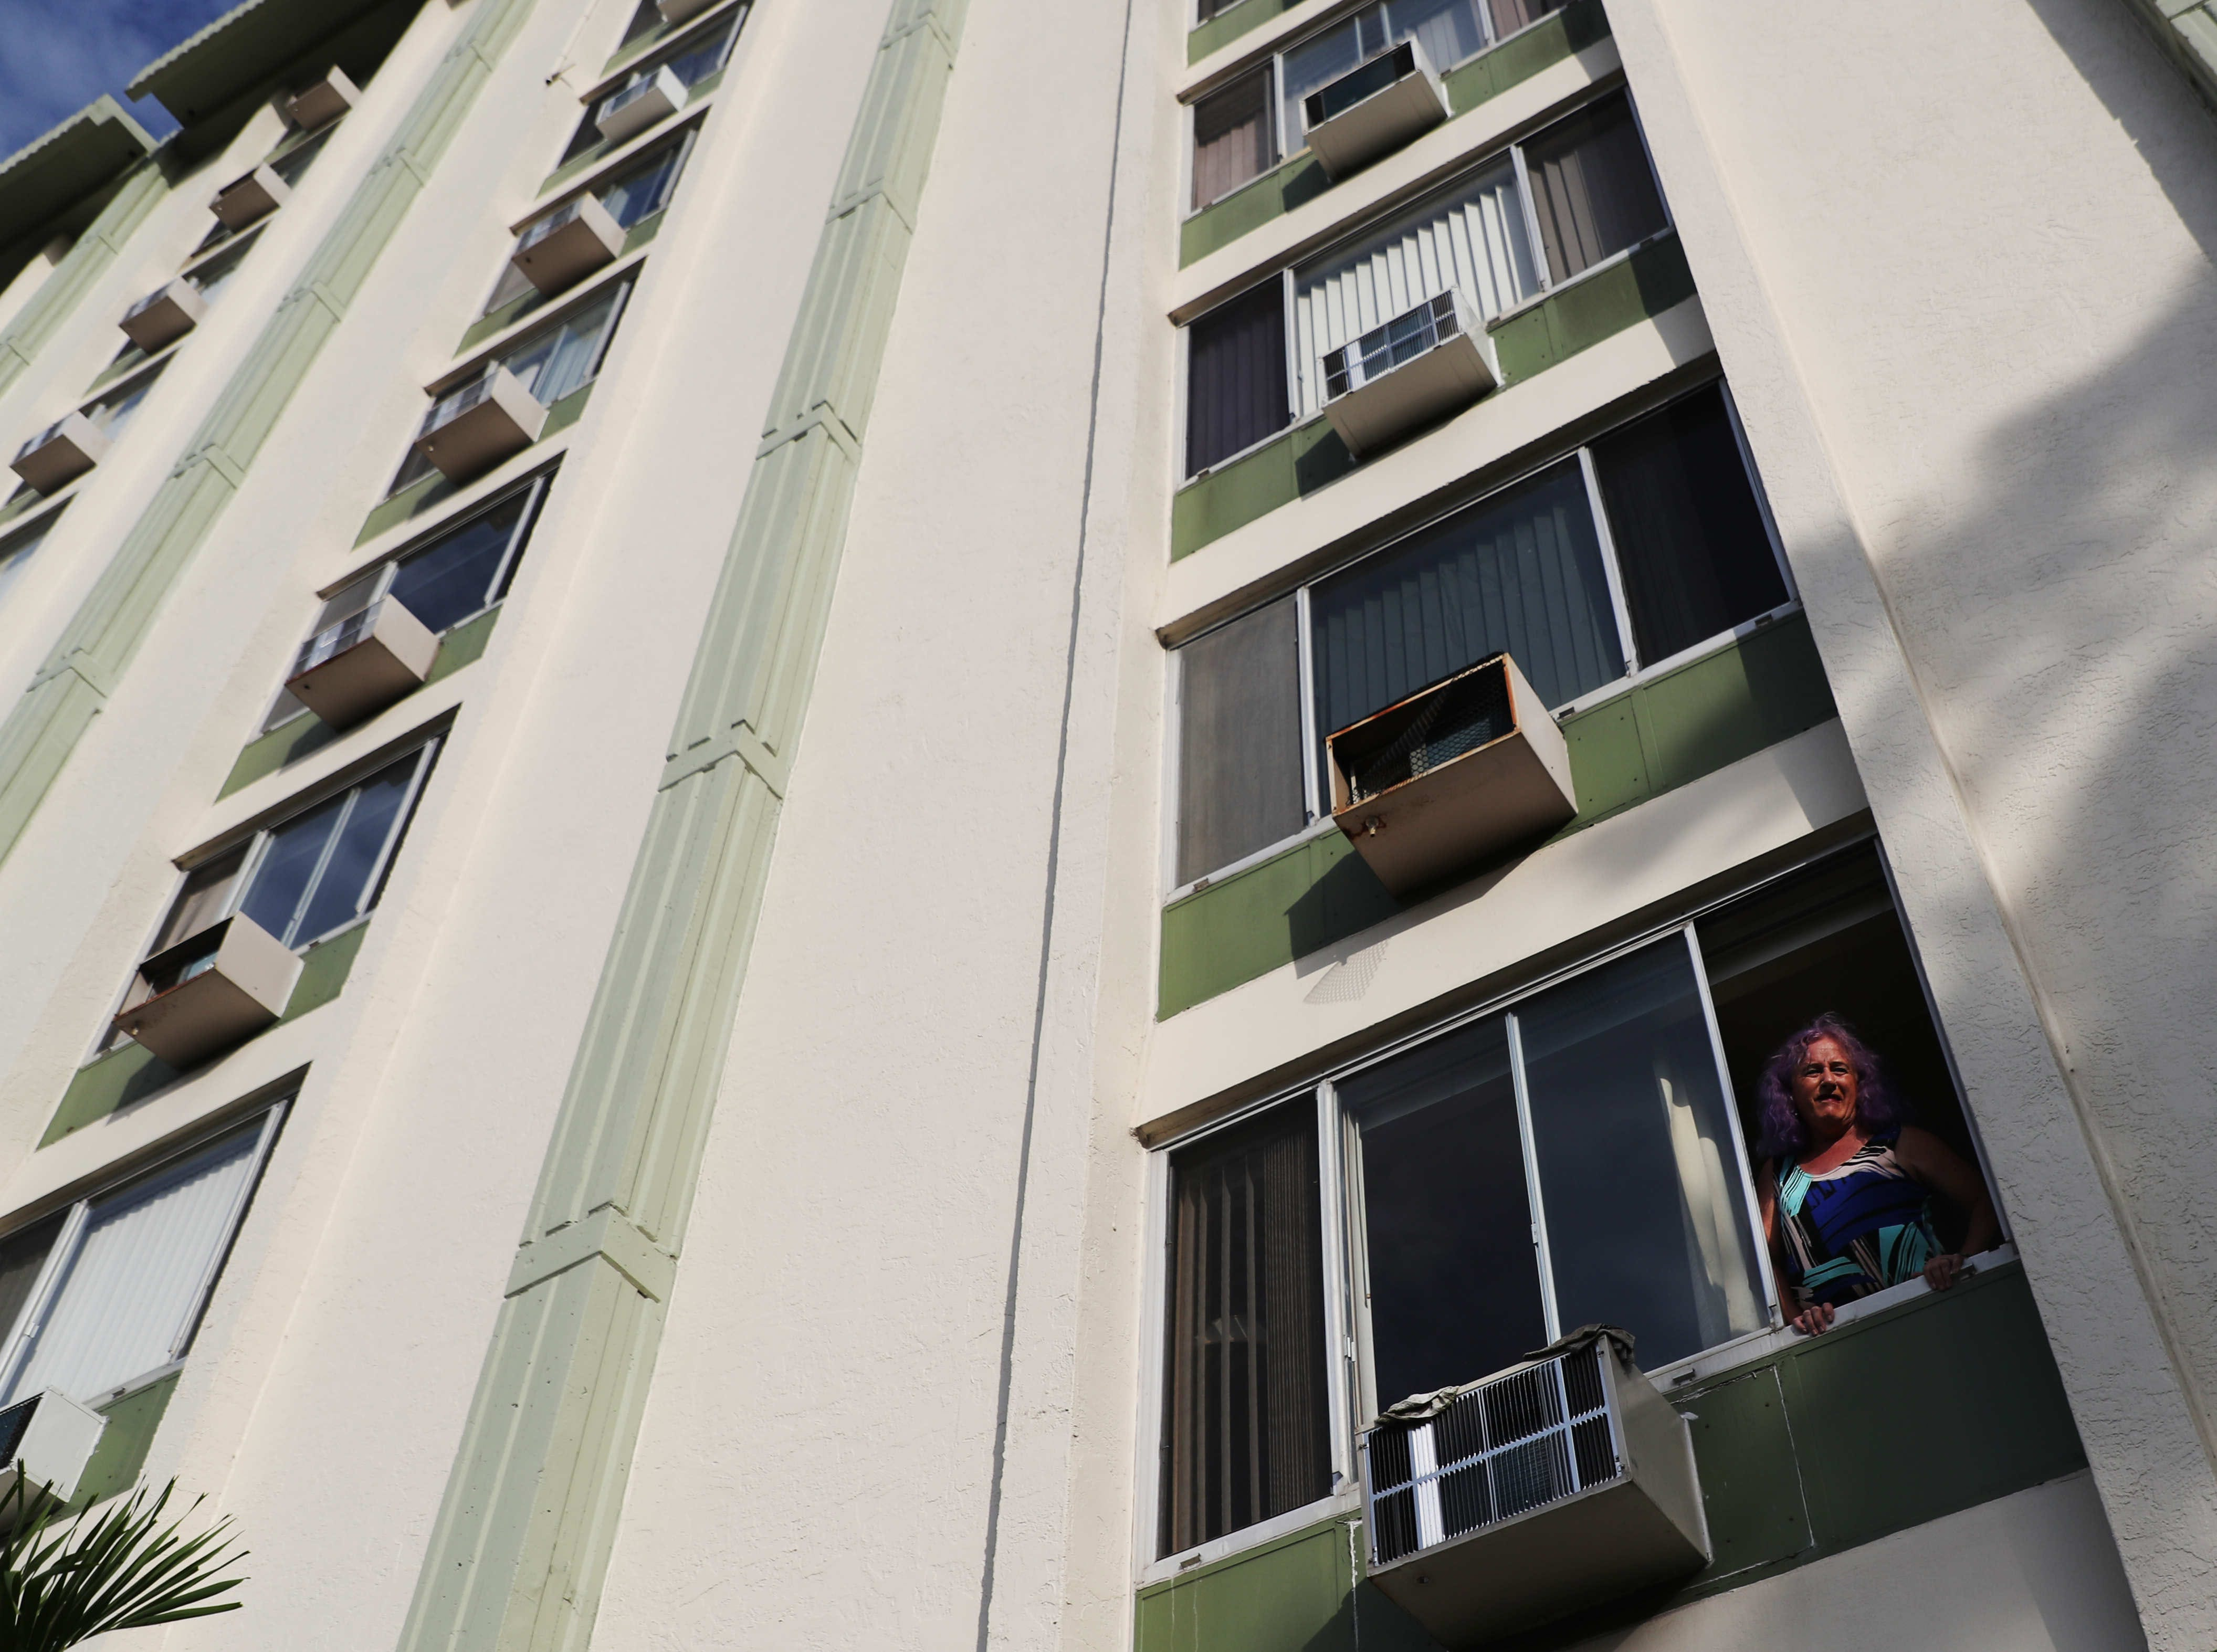 Jenna Satterfield, 62, poses in the window of her downtown Fort Myers apartment. Satterfield, a transgender  woman alternated between unemployment and homelessness due in part to discrimination, she says.